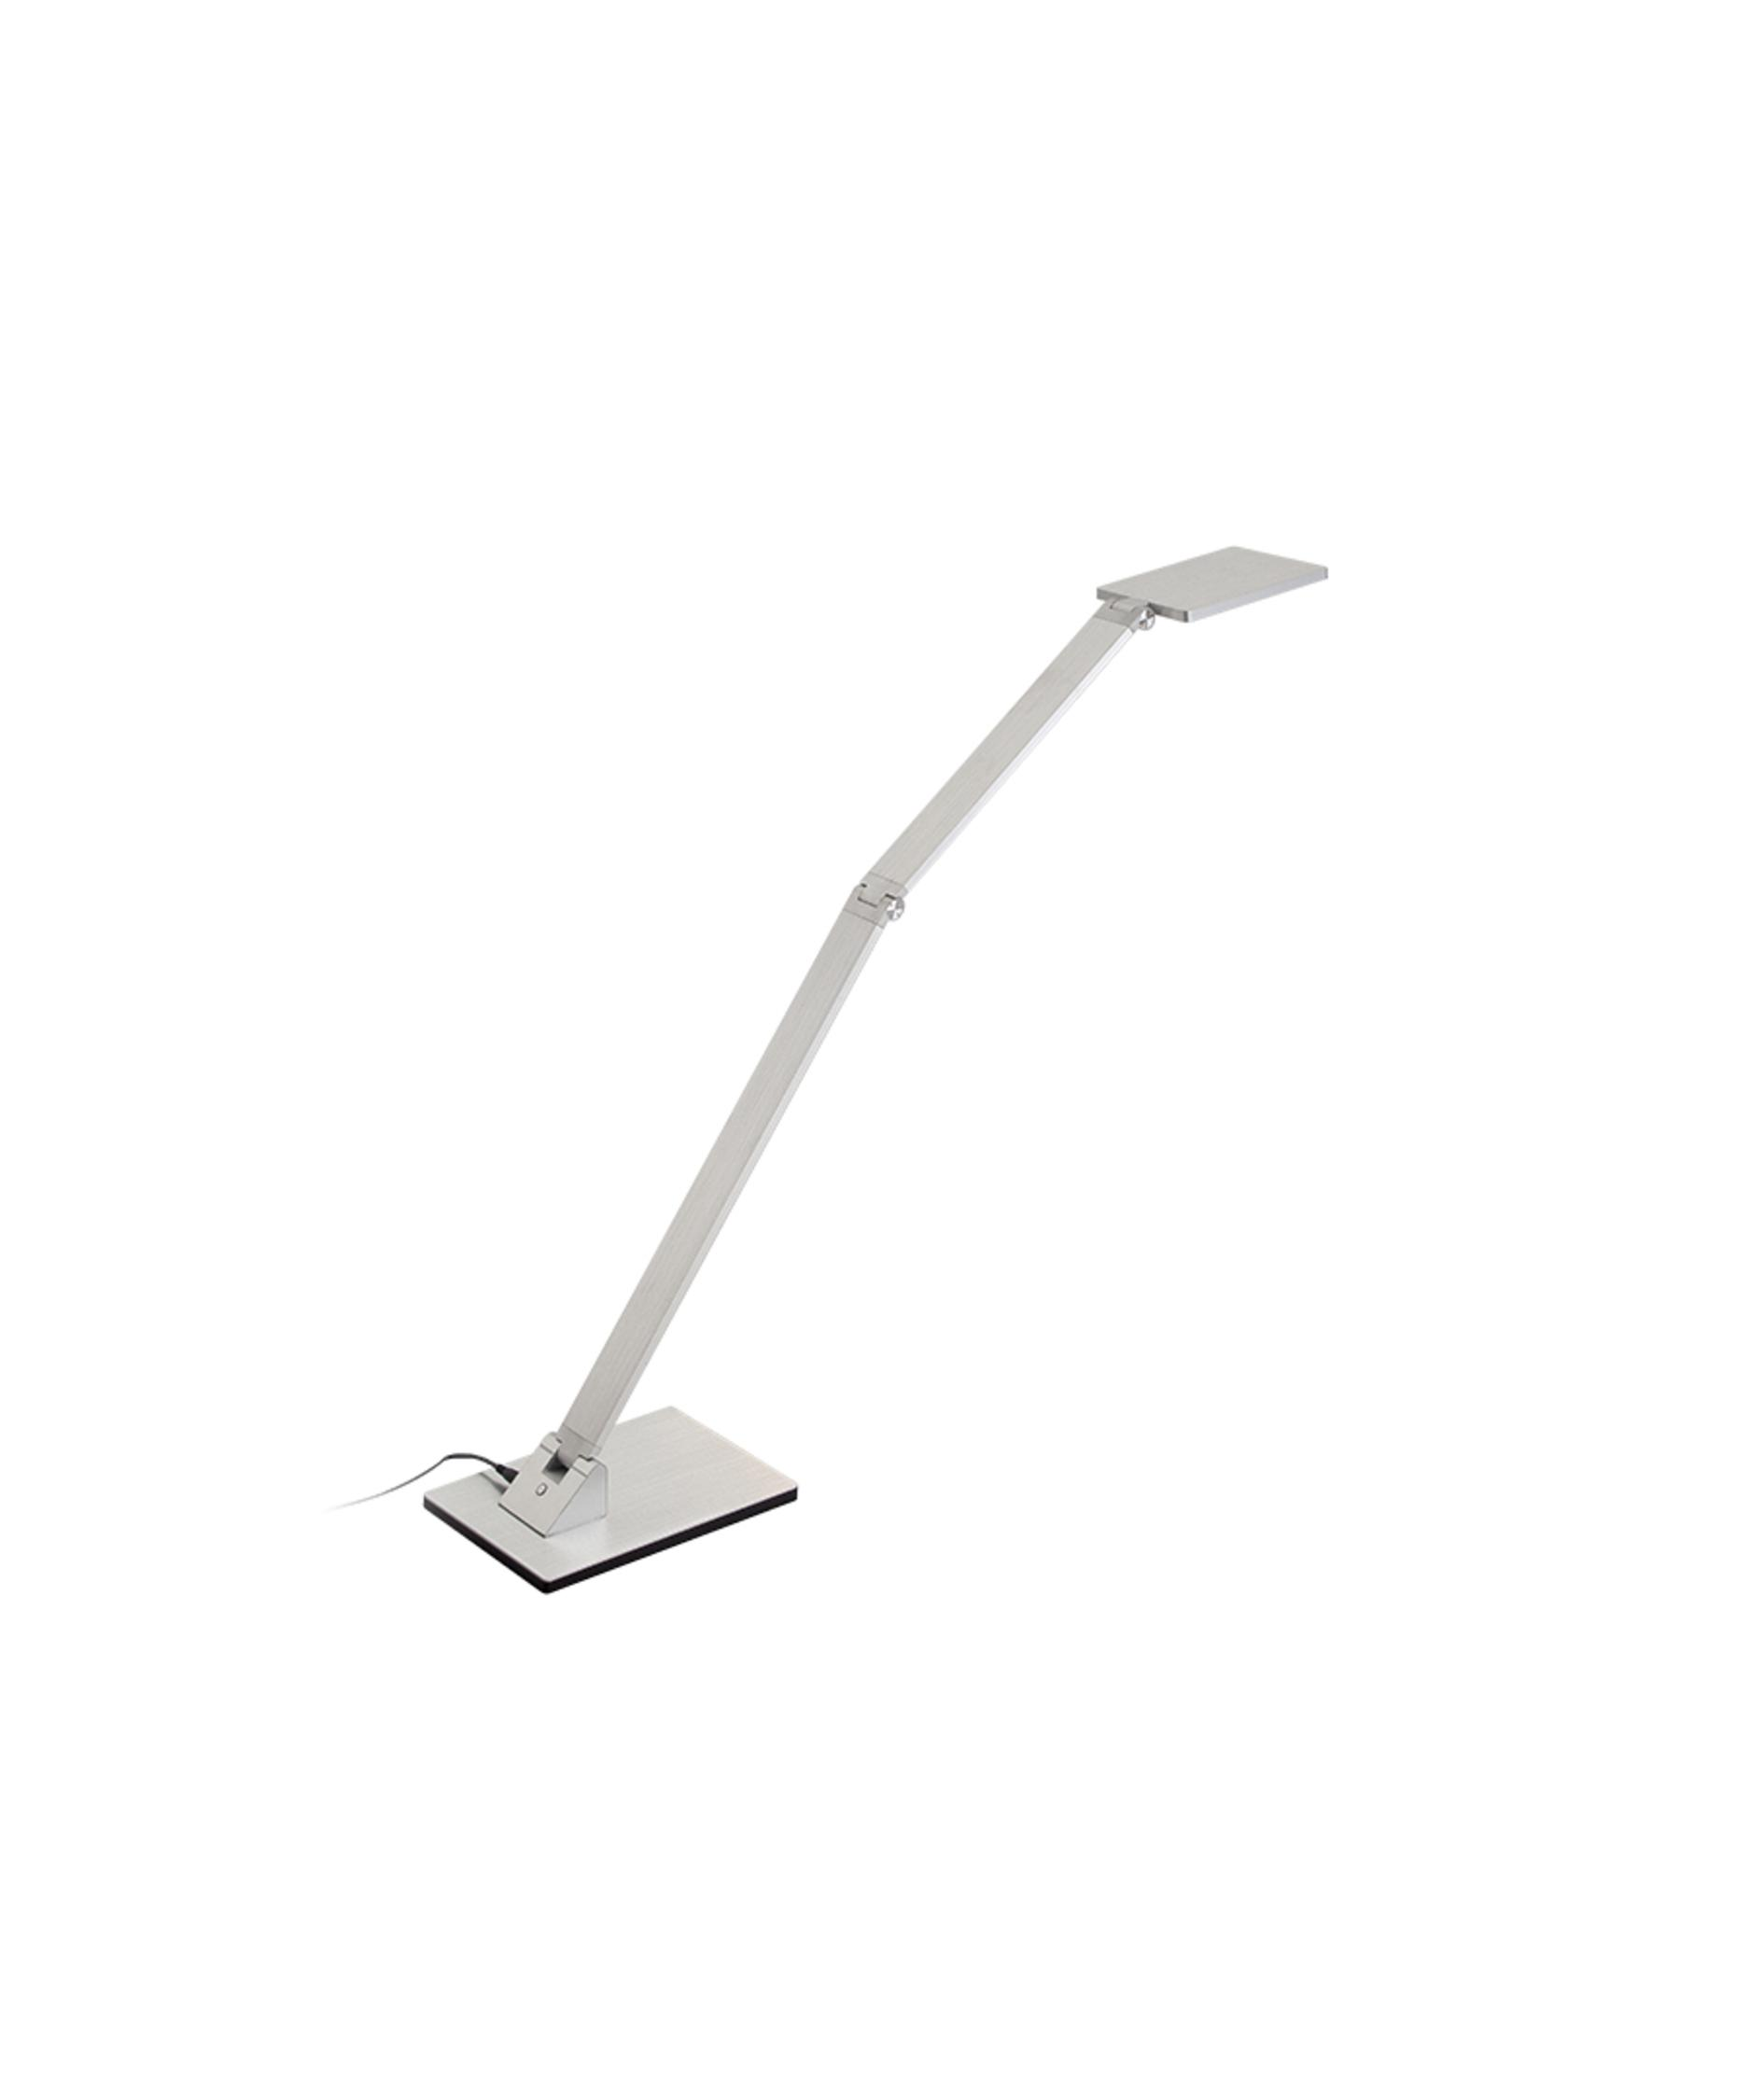 House of troy p14 202 ab piano desk lamp contemporary - Boxie Energy Smart 11 Inch Desk Lamp